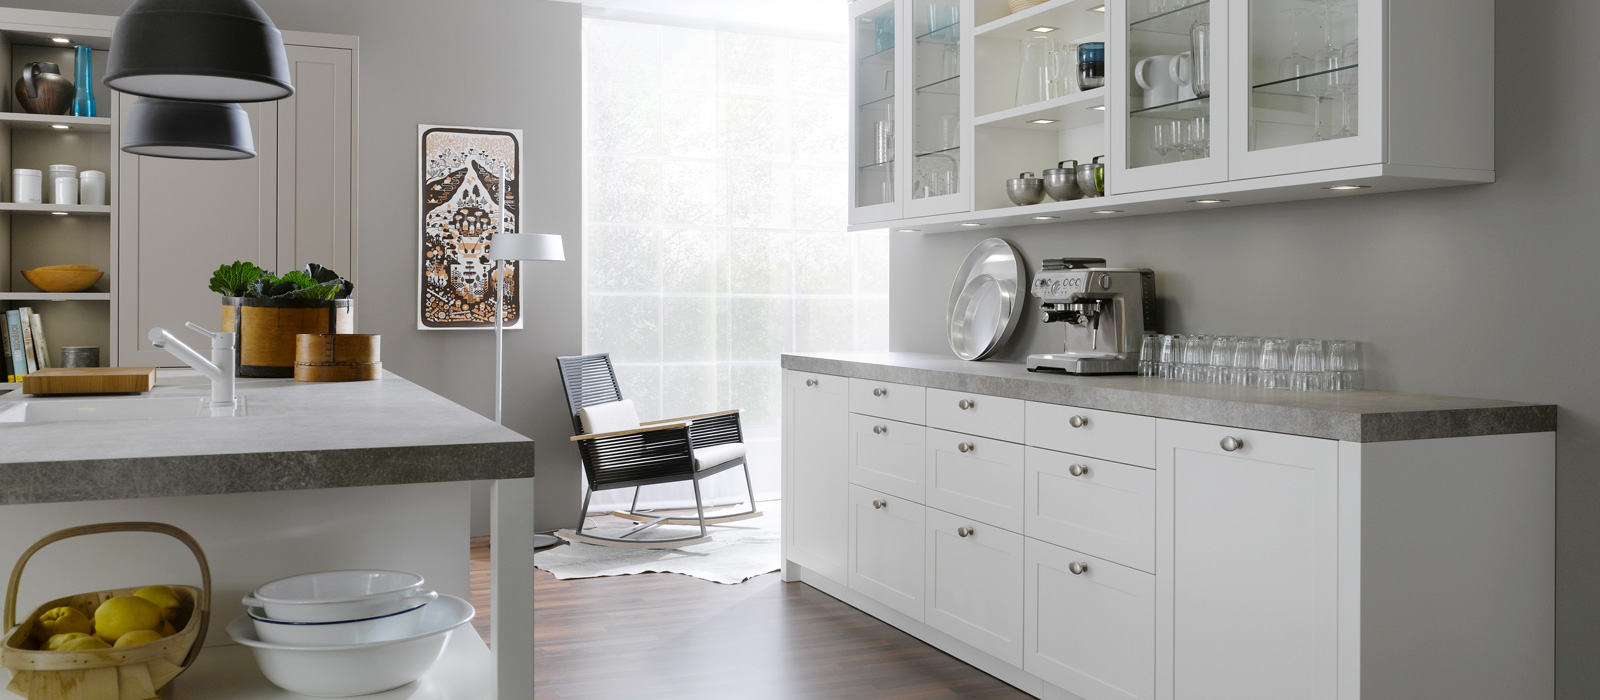 traditional style european kitchen cabinets Traditional Kitchen Cabinets